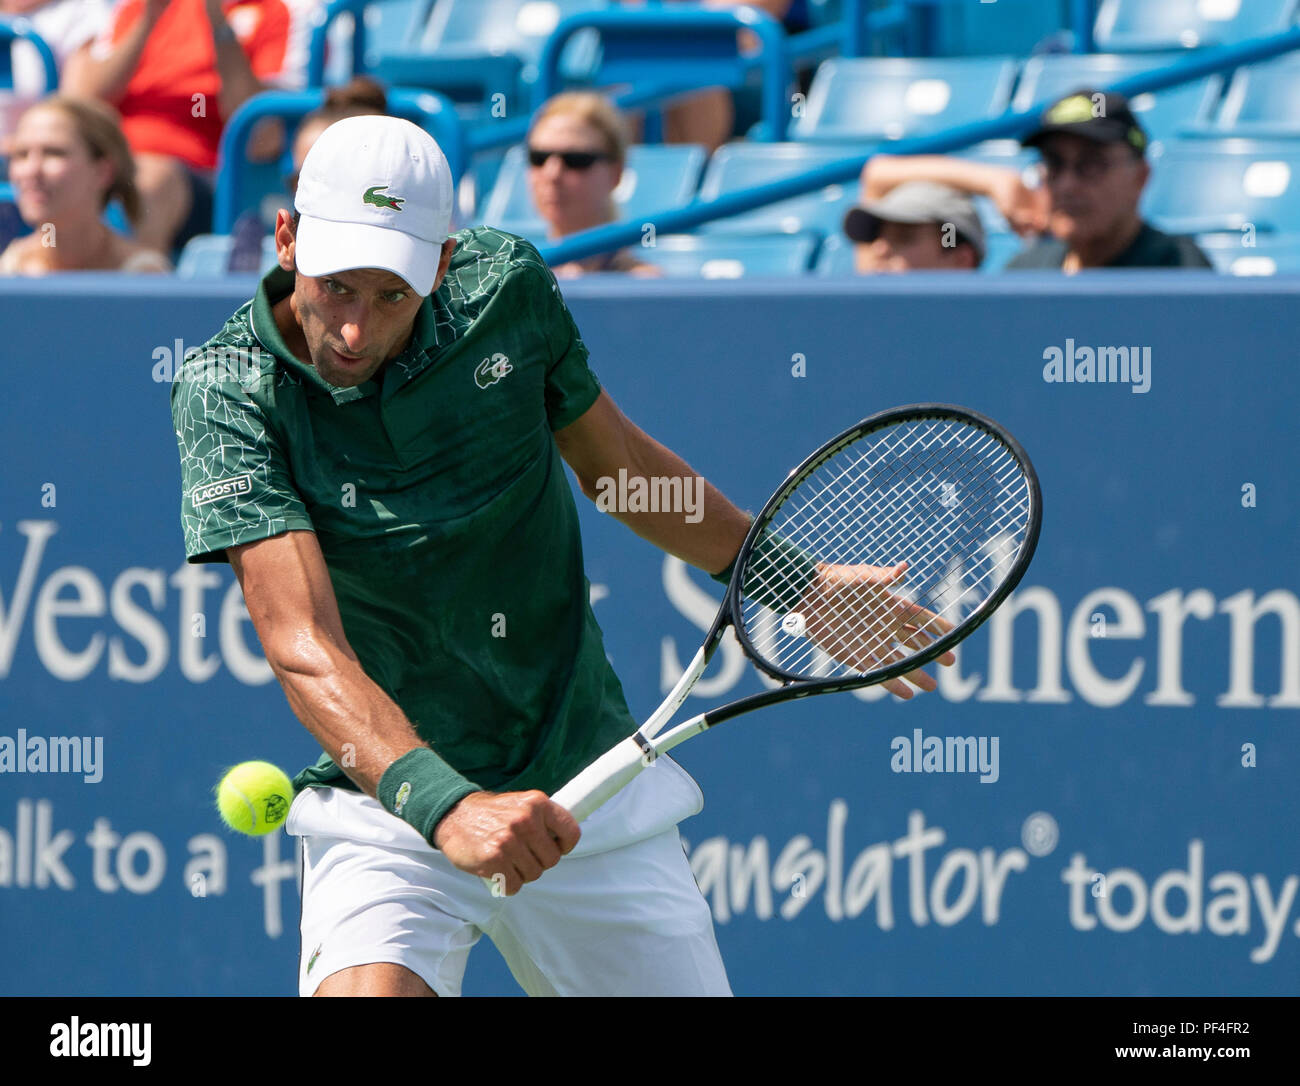 Ohio, USA. 18 August 2018.  Novak Djokovic (SRB) defeated Marin Cilic (CRO) 6-4, 3-6, 6-3, at the Western & Southern Open being played at Lindner Family Tennis Center in Mason, Ohio. © Leslie Billman/Tennisclix/CSM Credit: Cal Sport Media/Alamy Live News - Stock Image